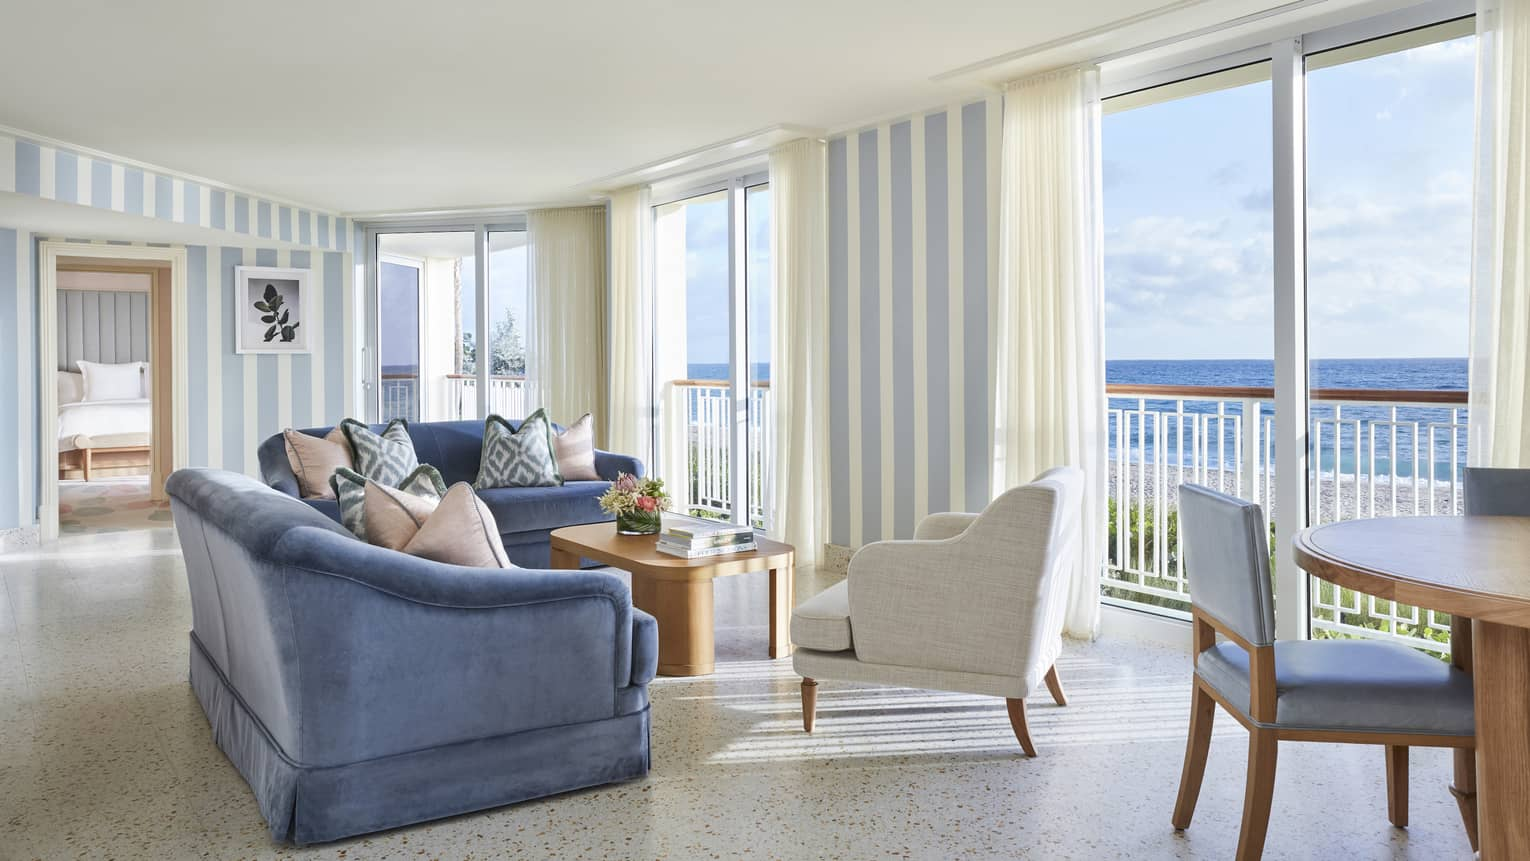 Living area in a suite, with blue sofas, a white armchair and floor-to-ceiling views of the ocean